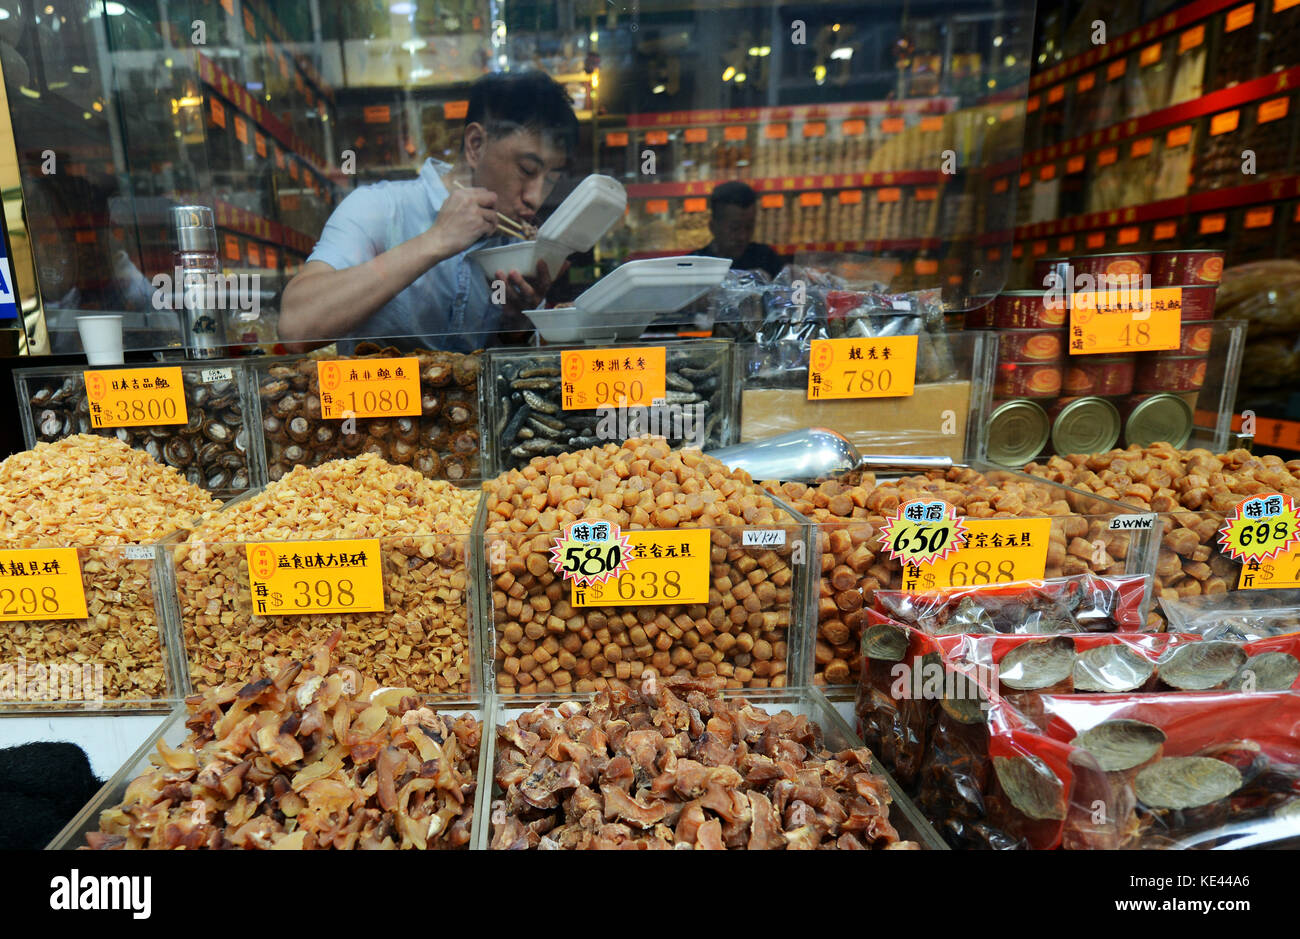 A dried seafood shop in Sheung Wan in Hong Kong. Stock Photo